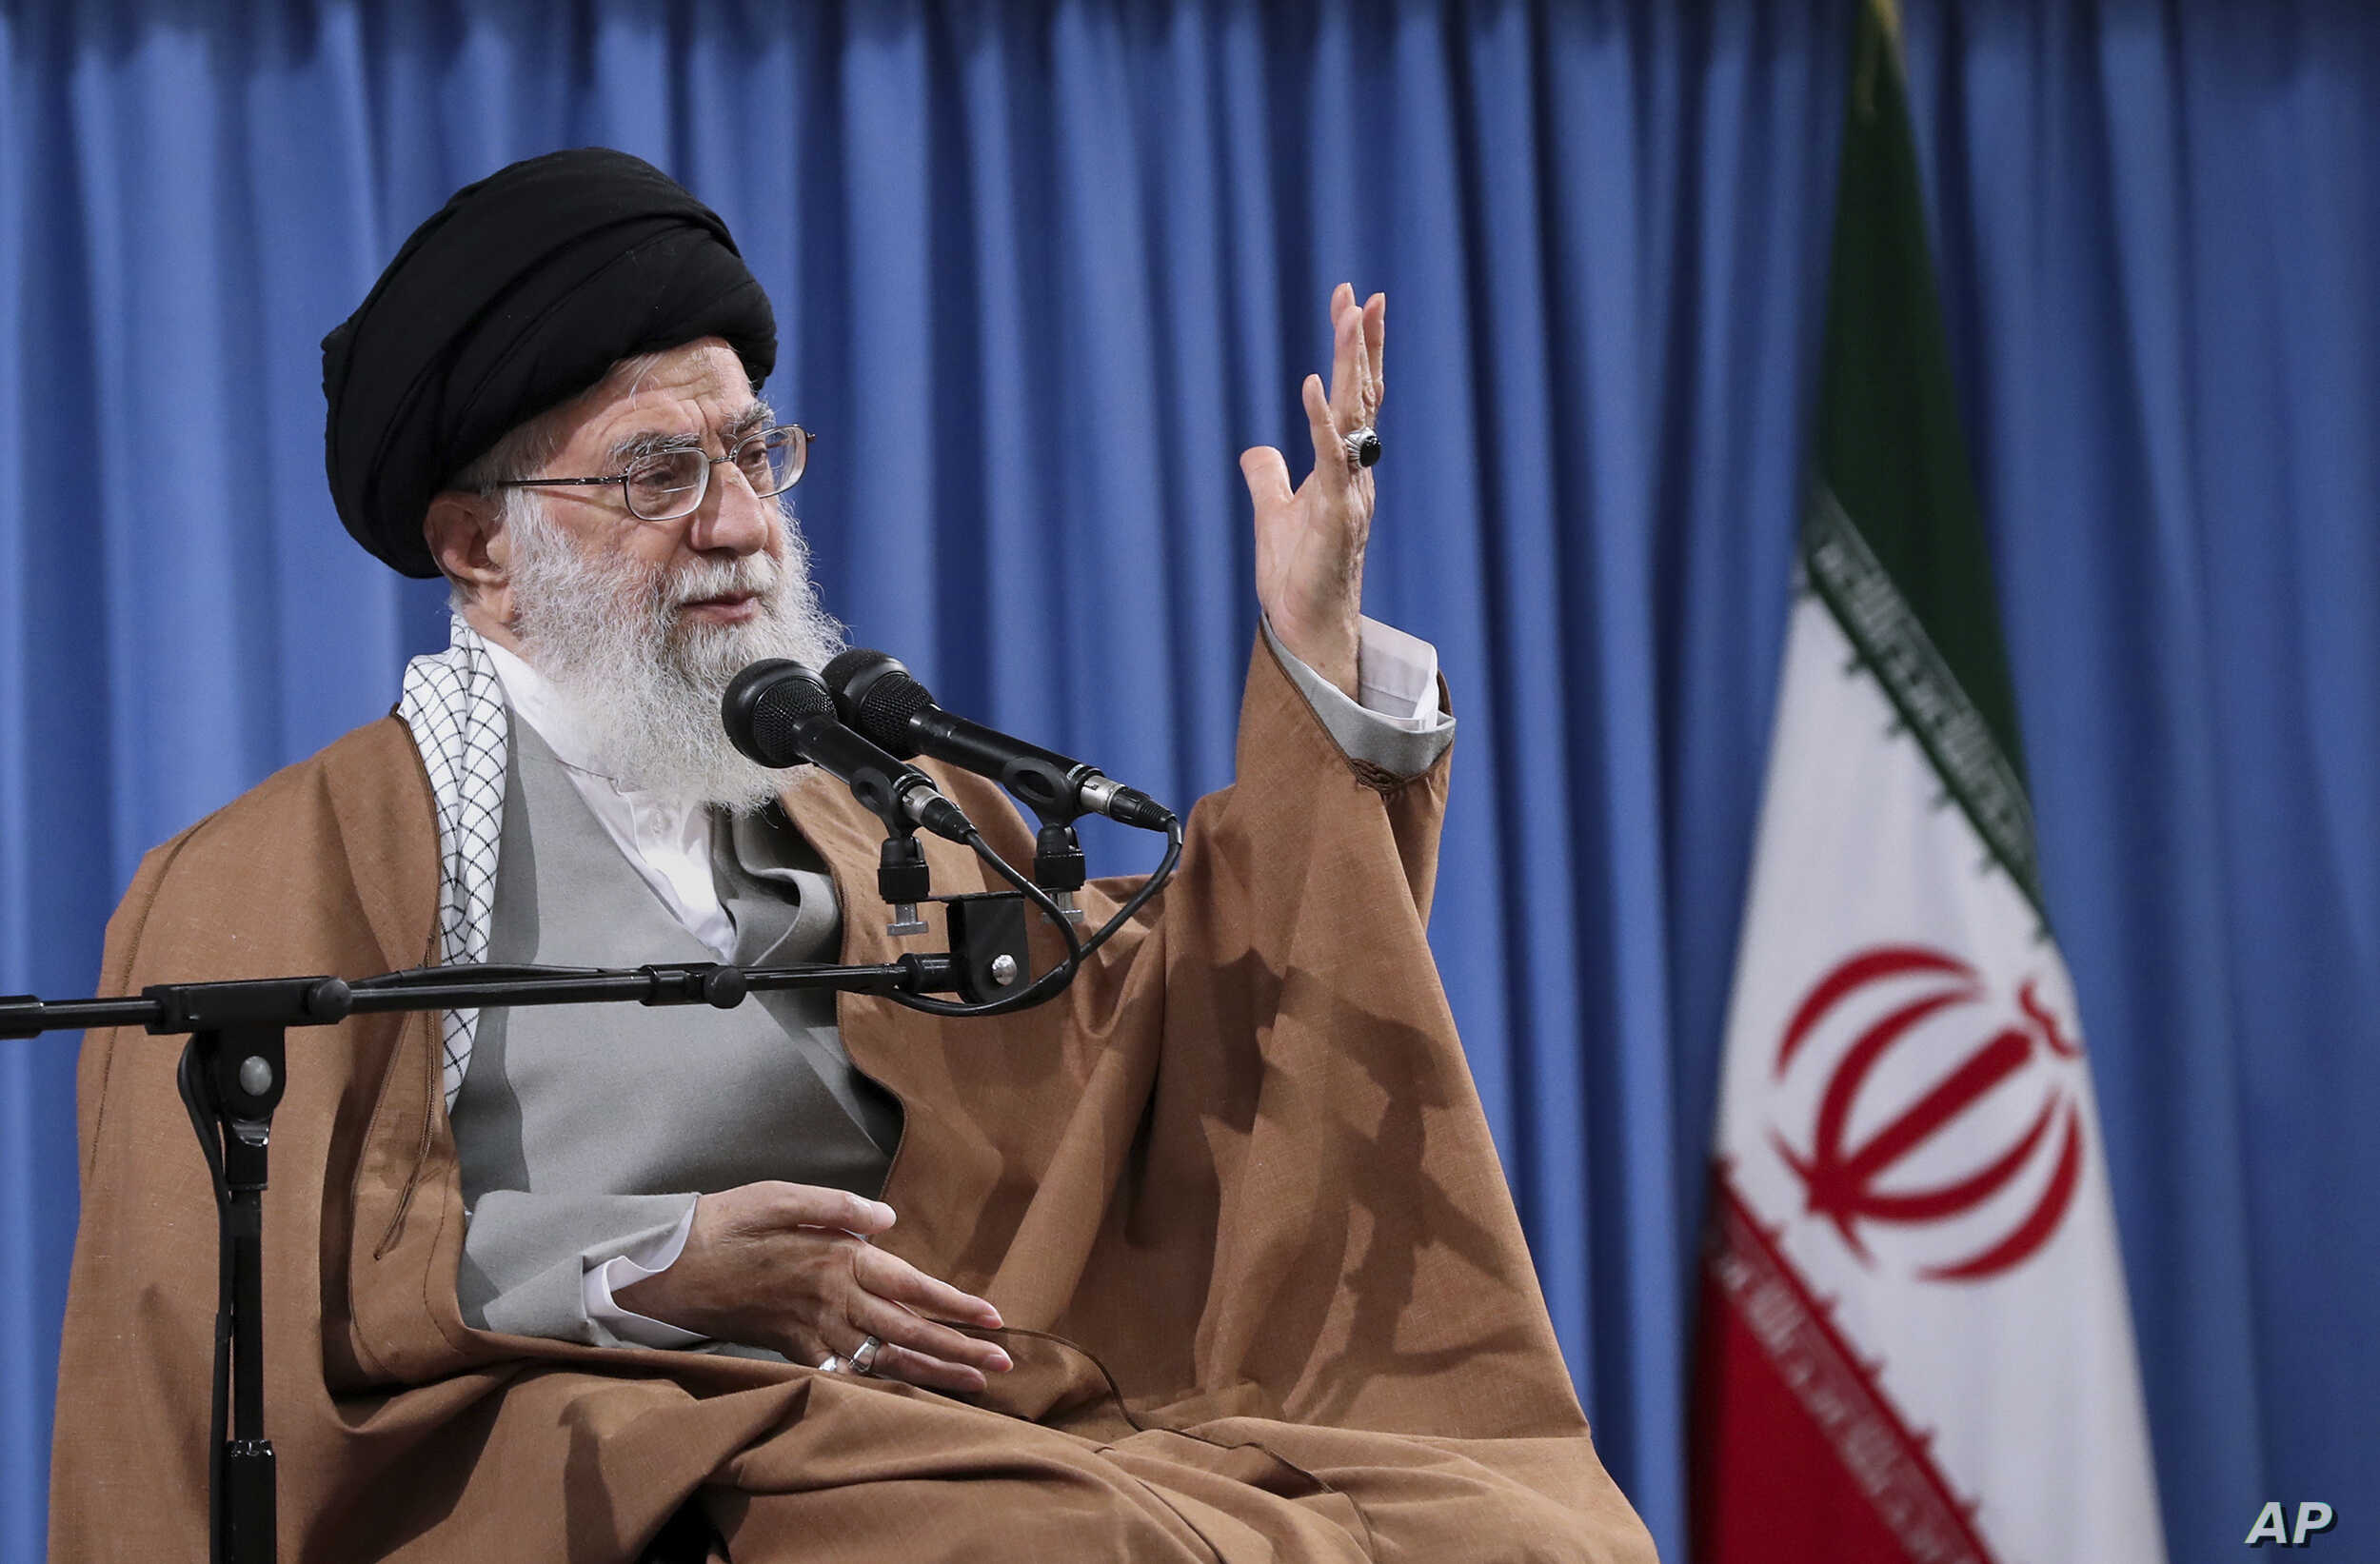 """In this picture released by an official website of the office of the Iranian supreme leader, Ayatollah Ali Khamenei speaks at a meeting with a group of  Revolutionary Guards and their families, in Tehran, Iran, April 9, 2019. Khamenei praised Iran's Revolutionary Guard and said America's """"evil designs would not harm"""" the force after the White House designated the guard a foreign terrorist organization. (Office of the Iranian Supreme Leader via AP)"""